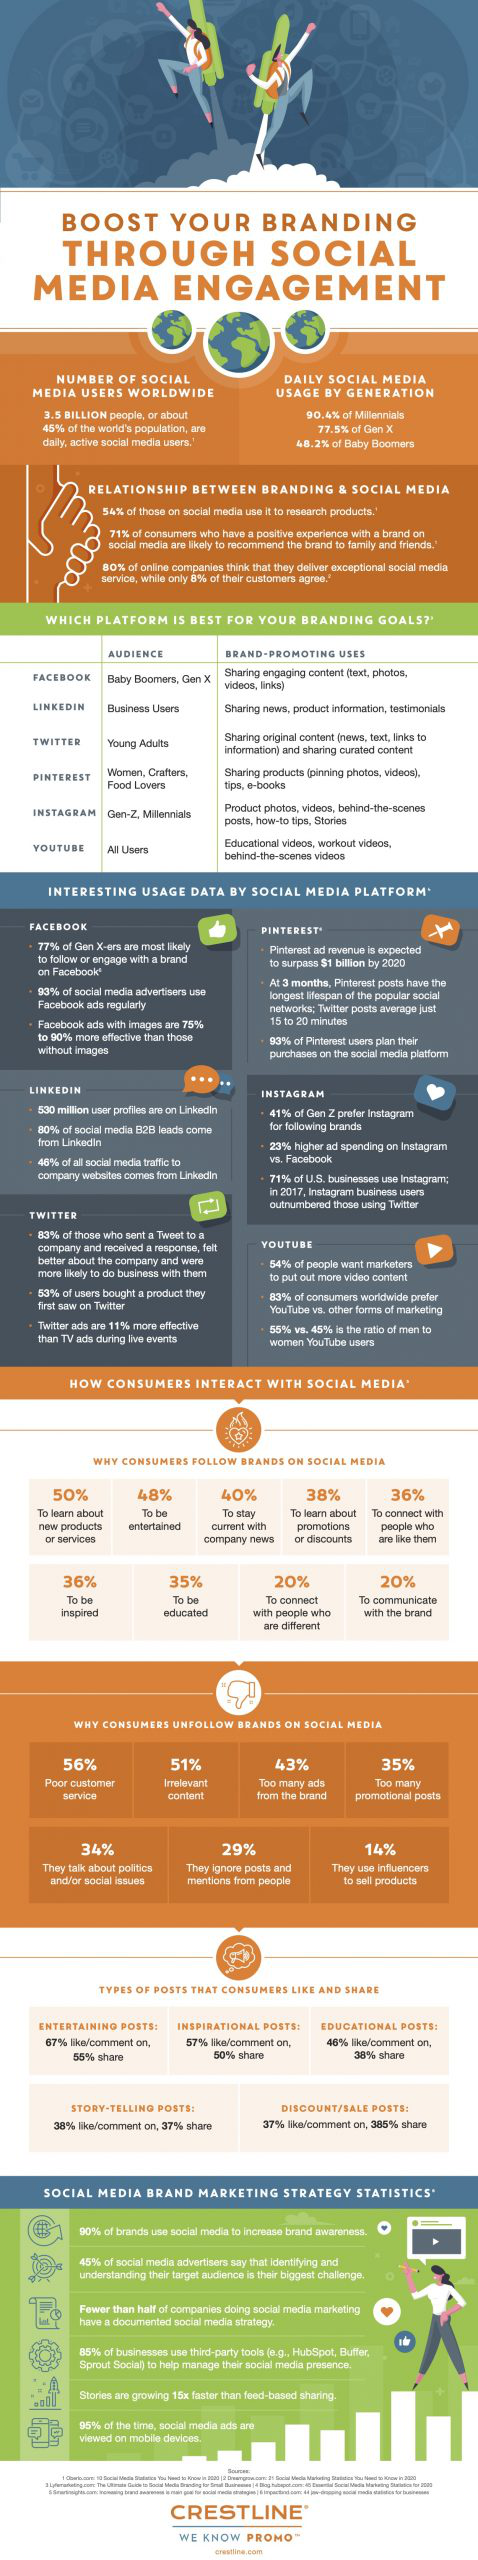 Boost Your Branding with Social Media Engagement Infographic by Crestline